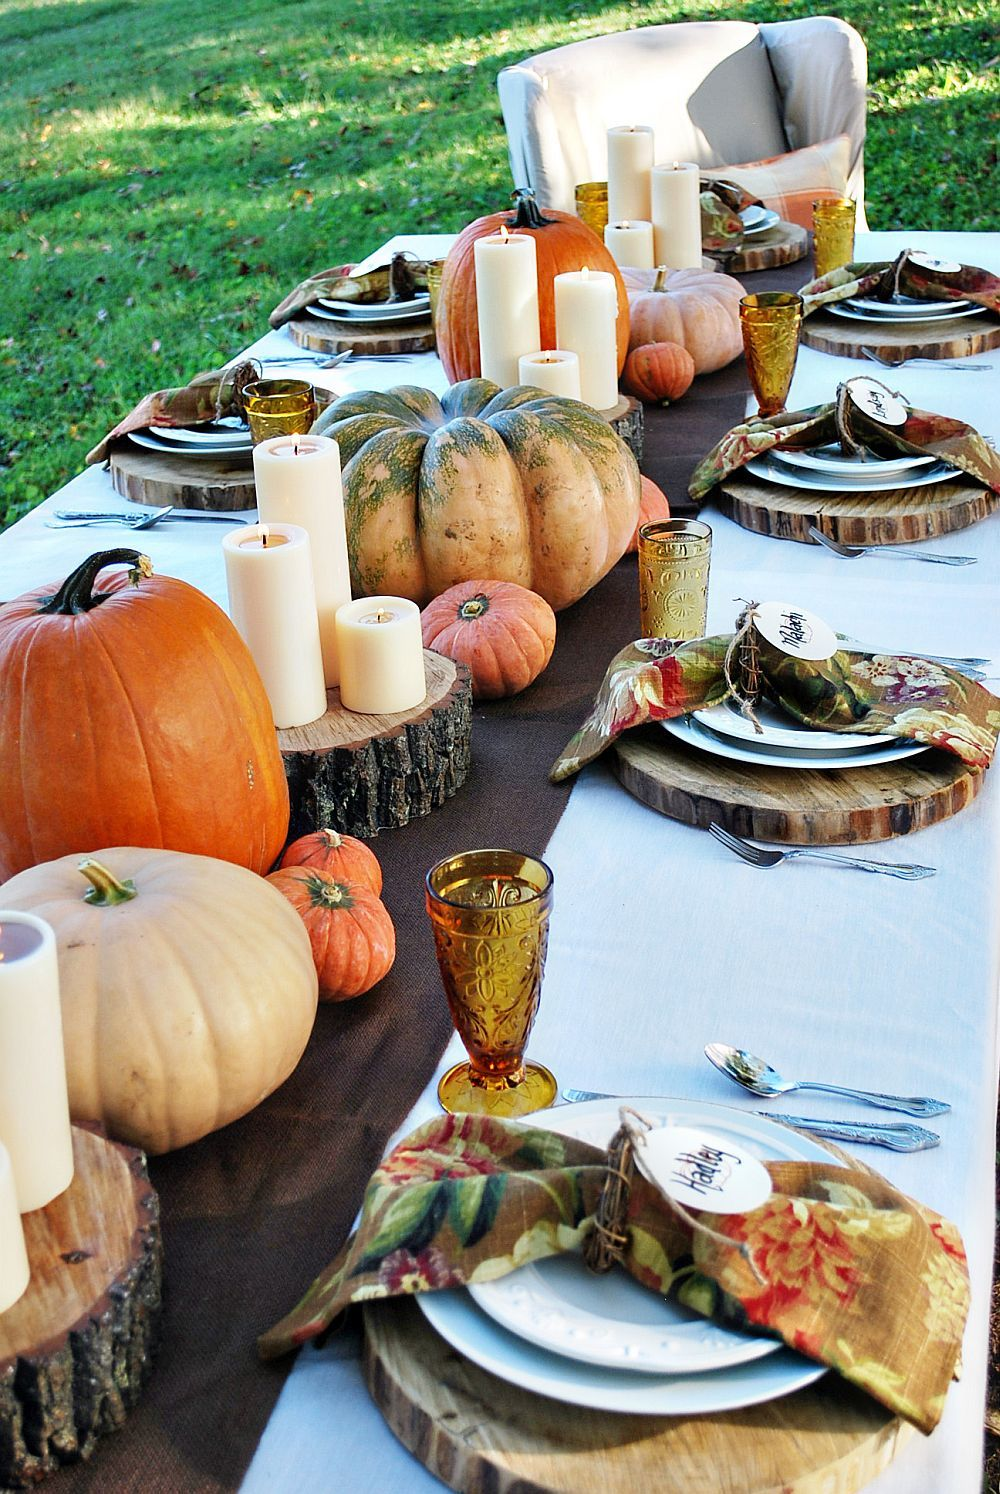 15 Outdoor Thanksgiving Dinner Decorations Table Settings Thanksgiving Dinner Decor Thanksgiving Table Decorations Outdoor Thanksgiving